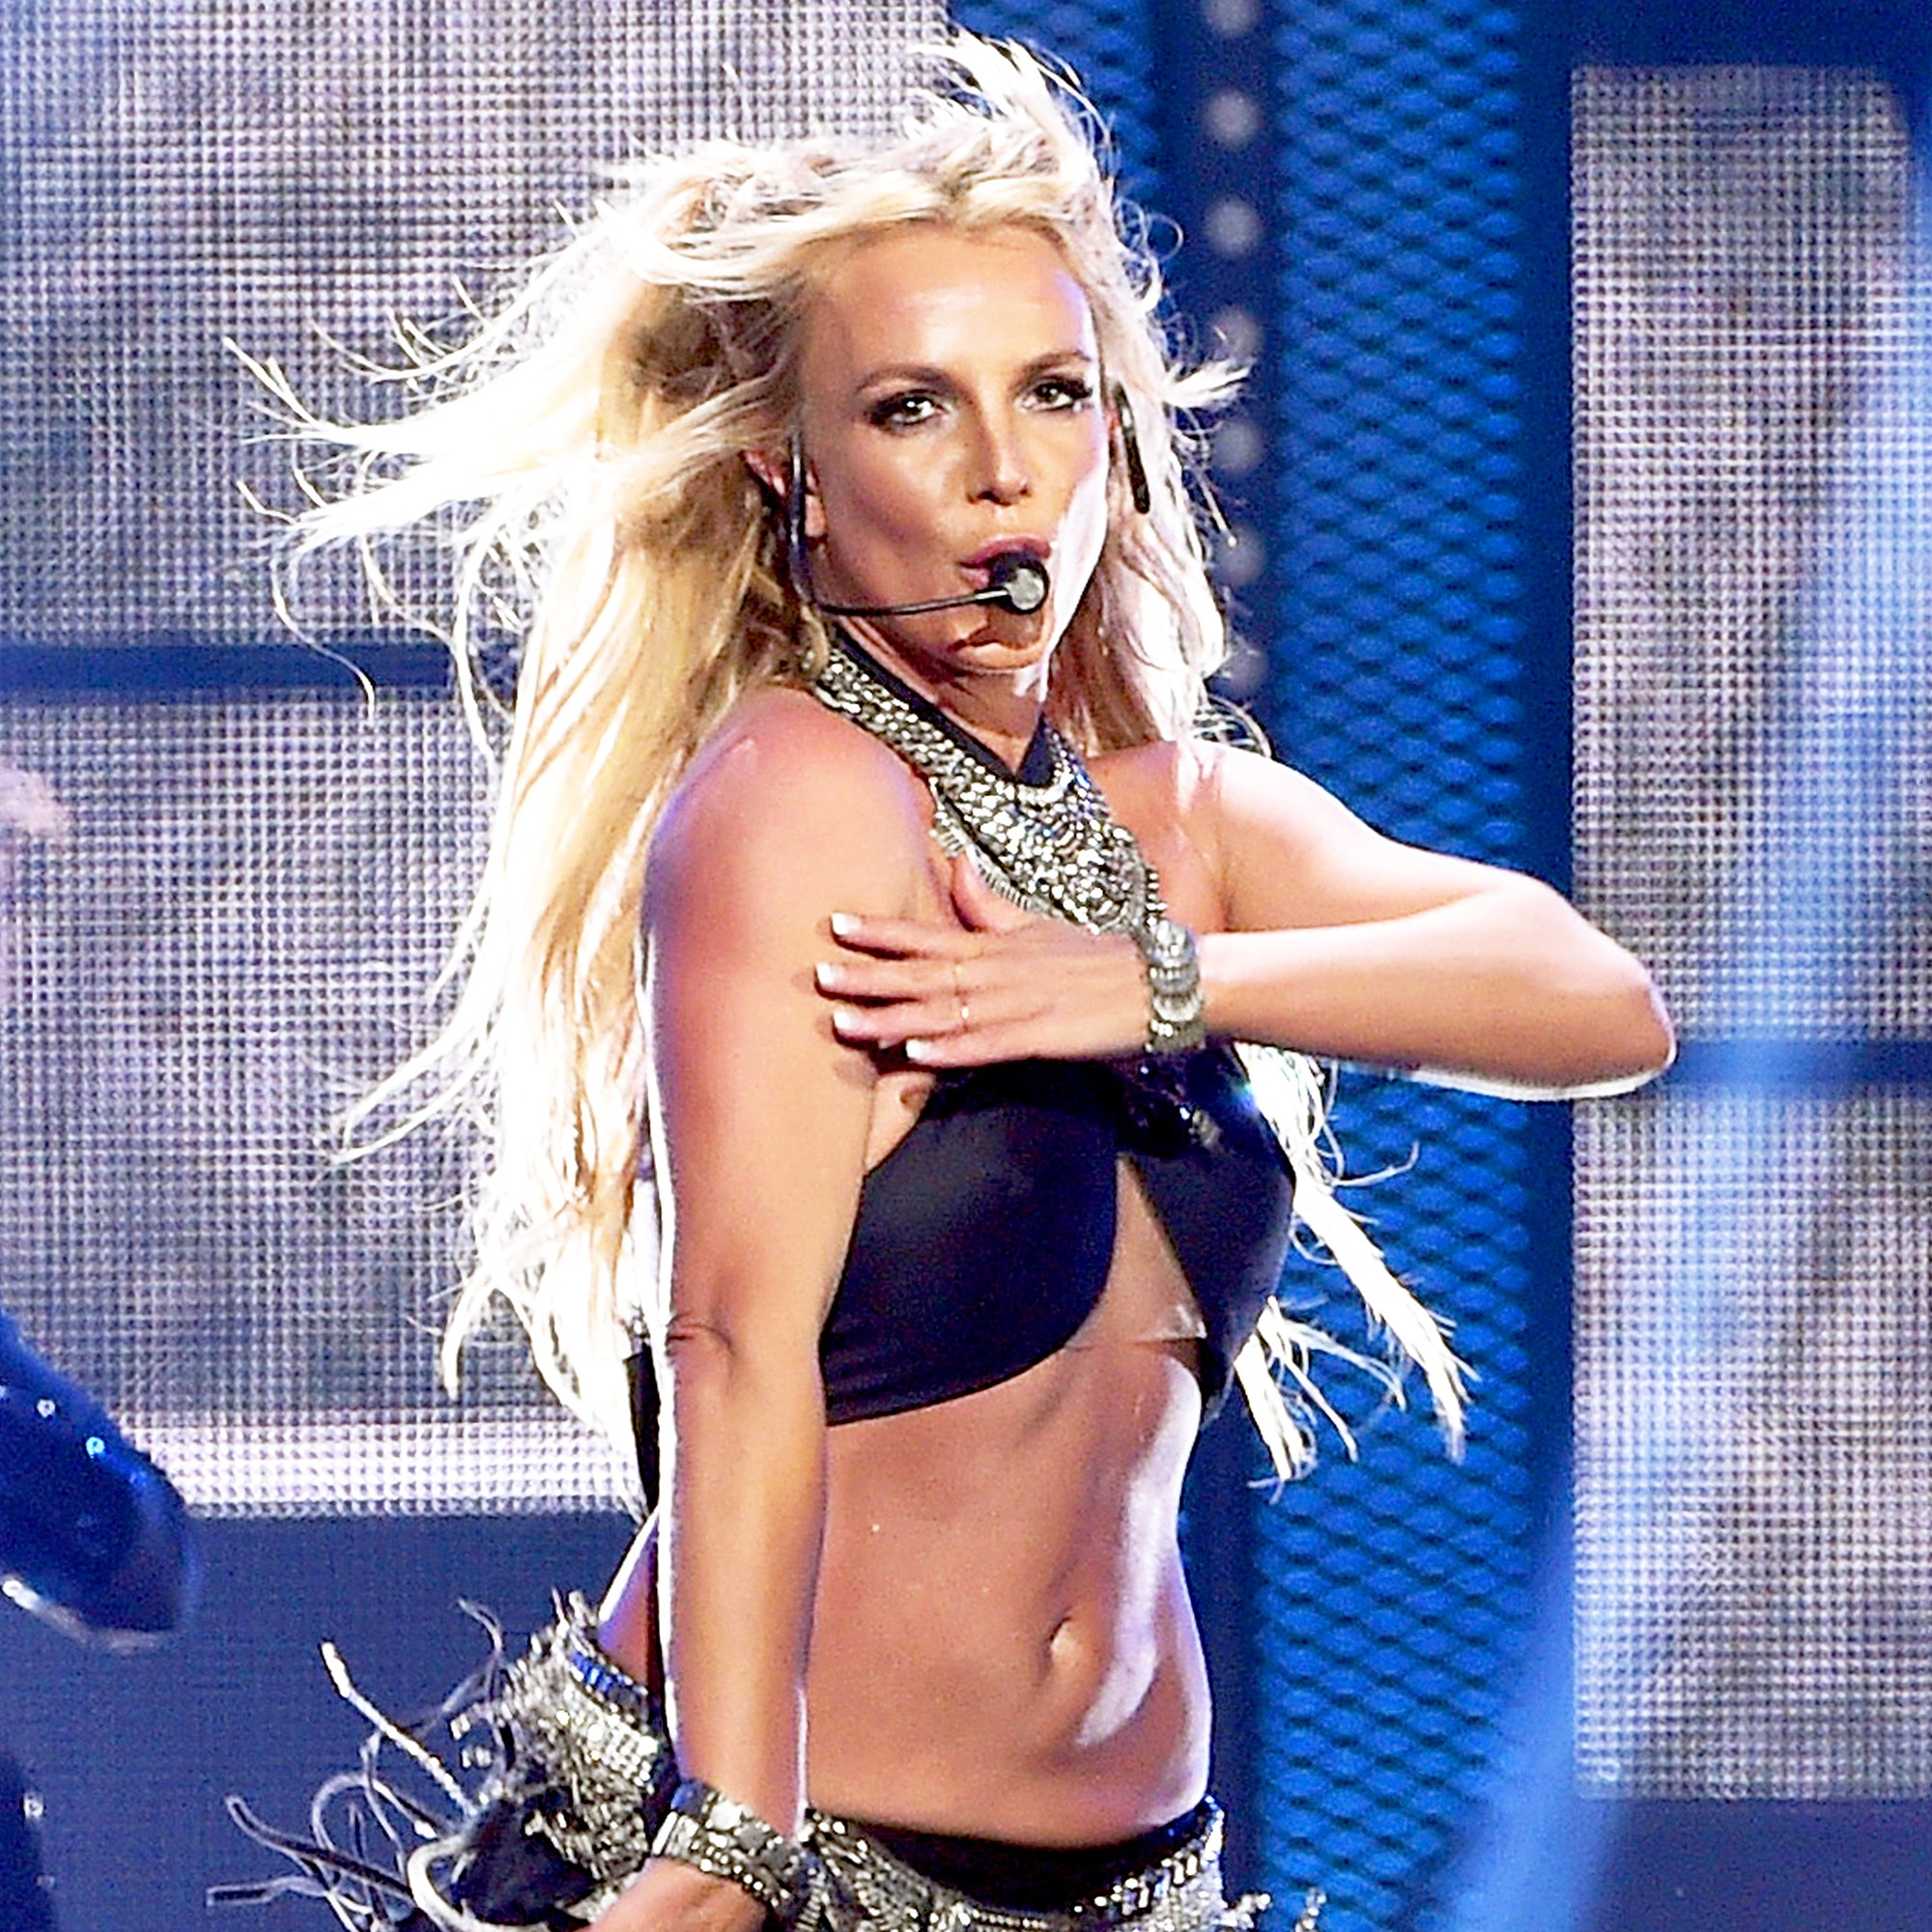 Britney Spears performs onstage at the arena in Las Vegas, Nevada.